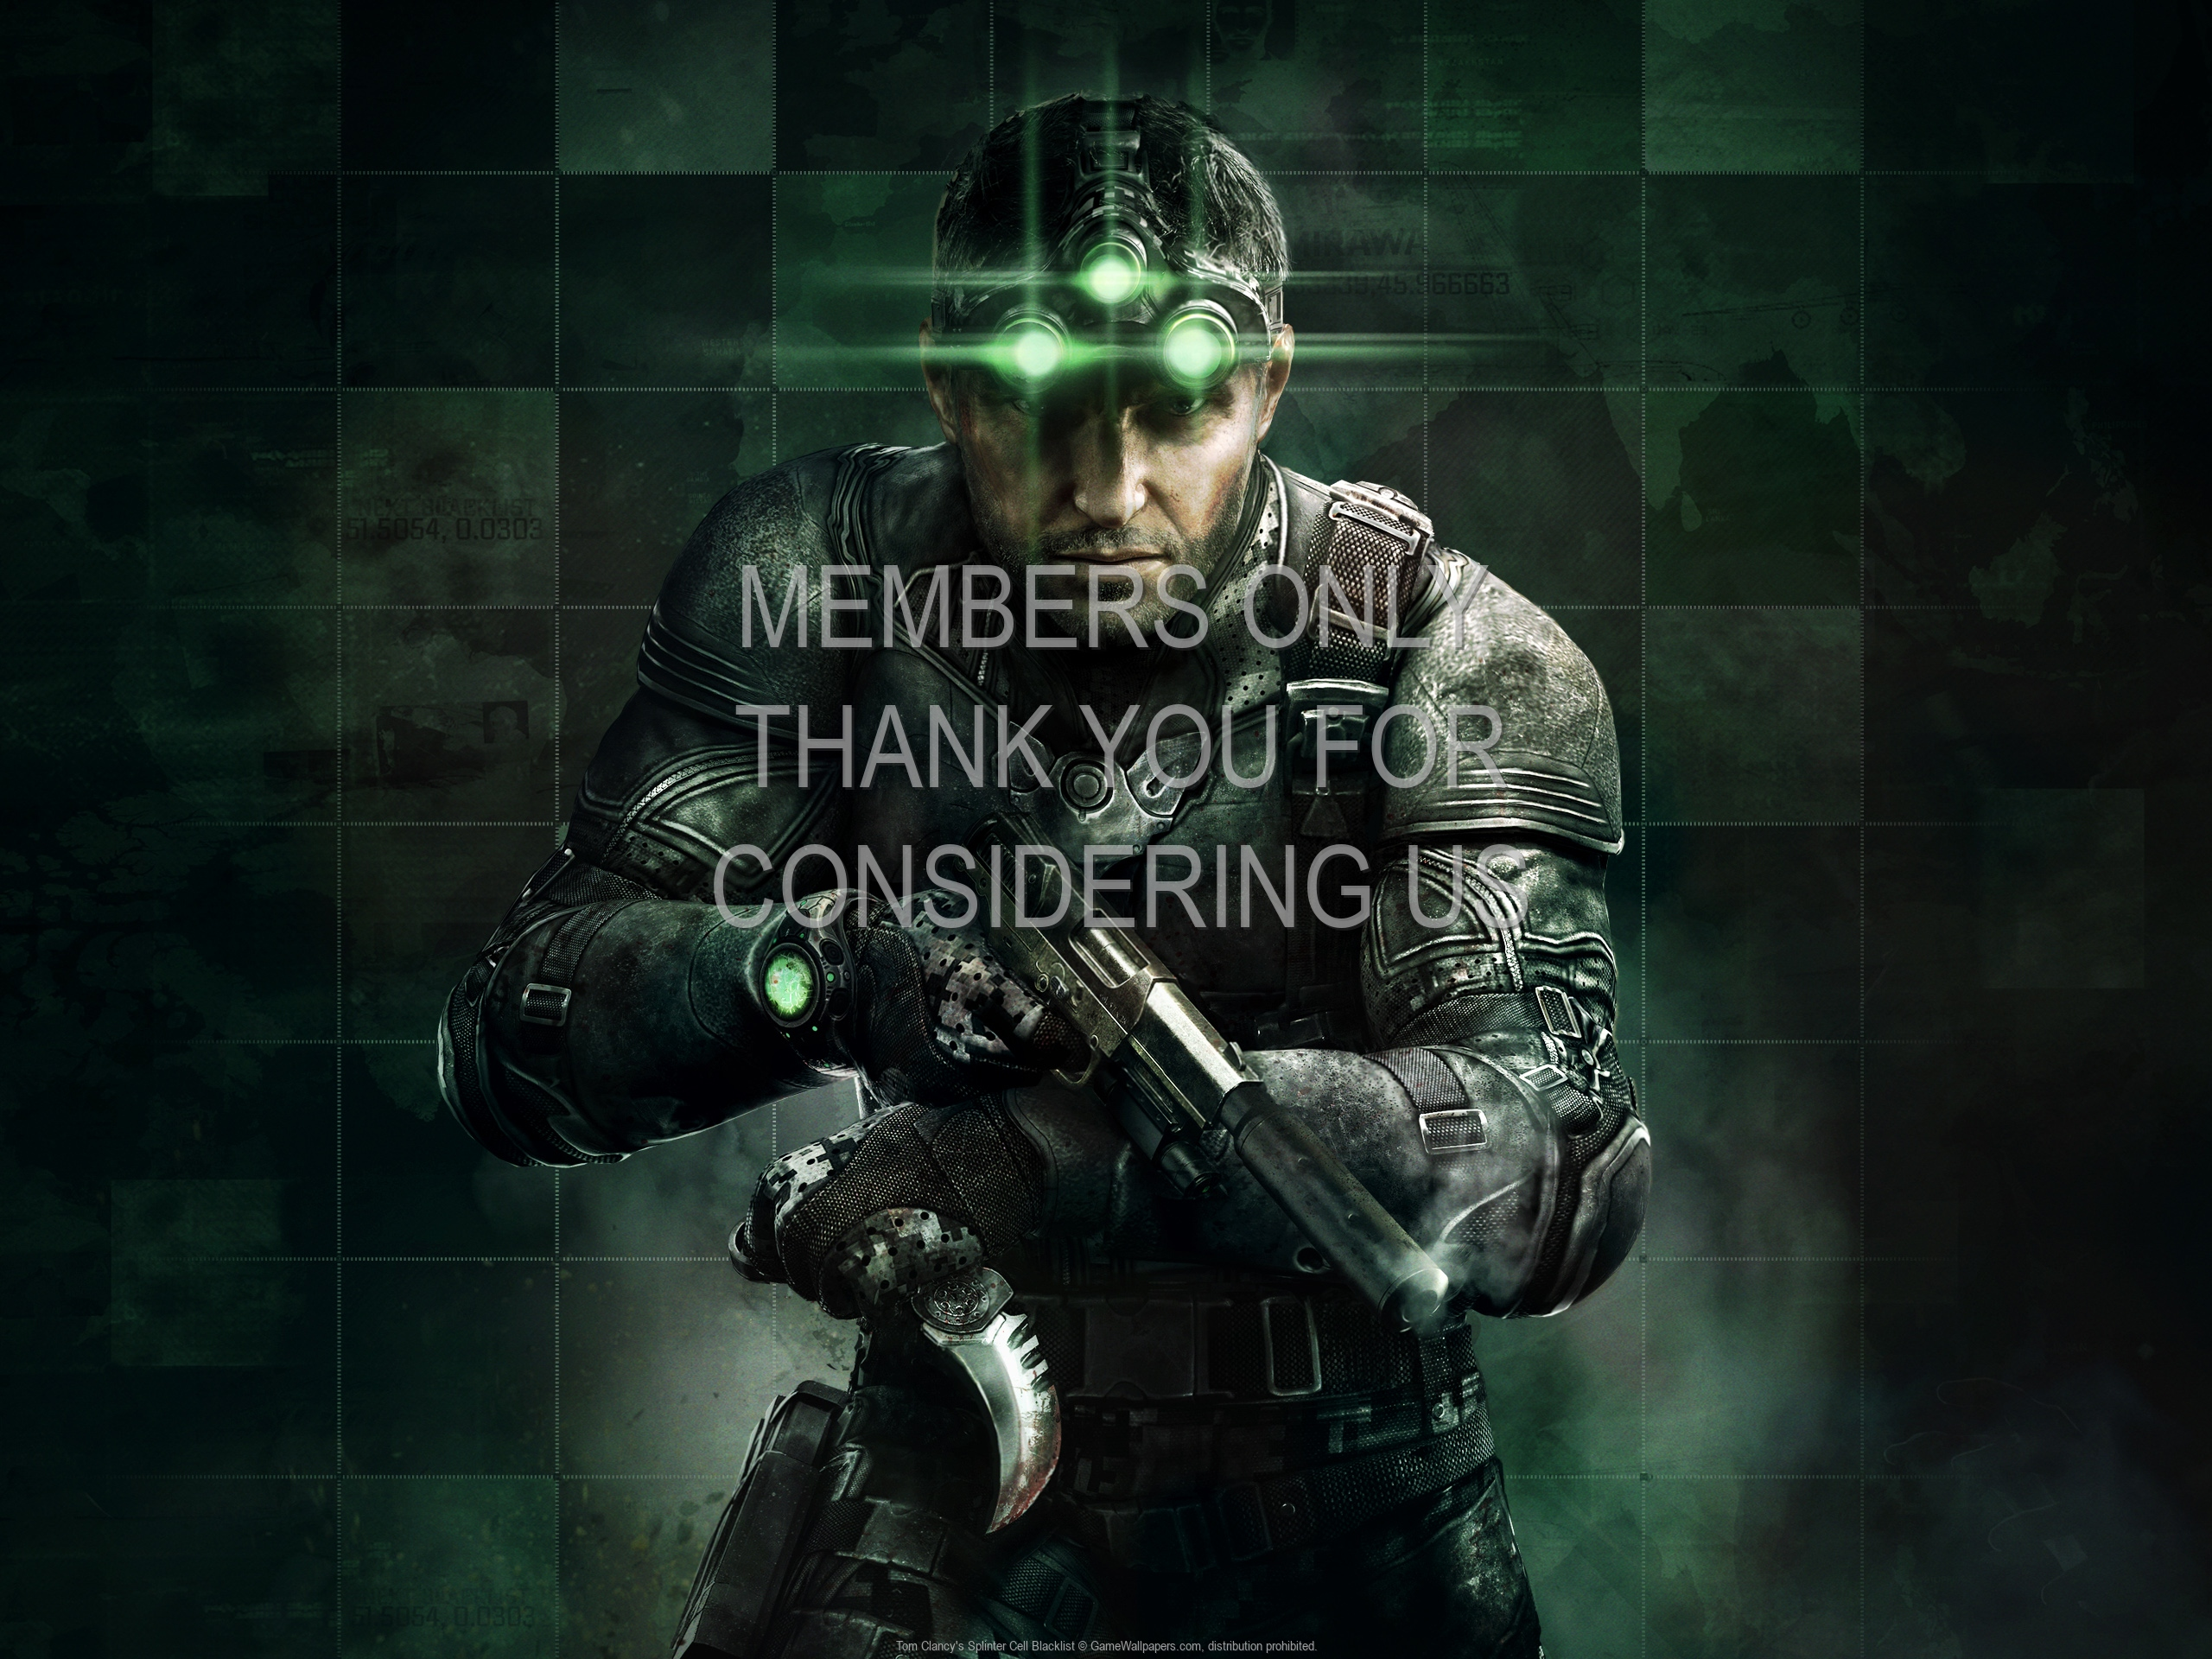 Tom Clancy's Splinter Cell: Blacklist 1920x1080 Handy Hintergrundbild 04